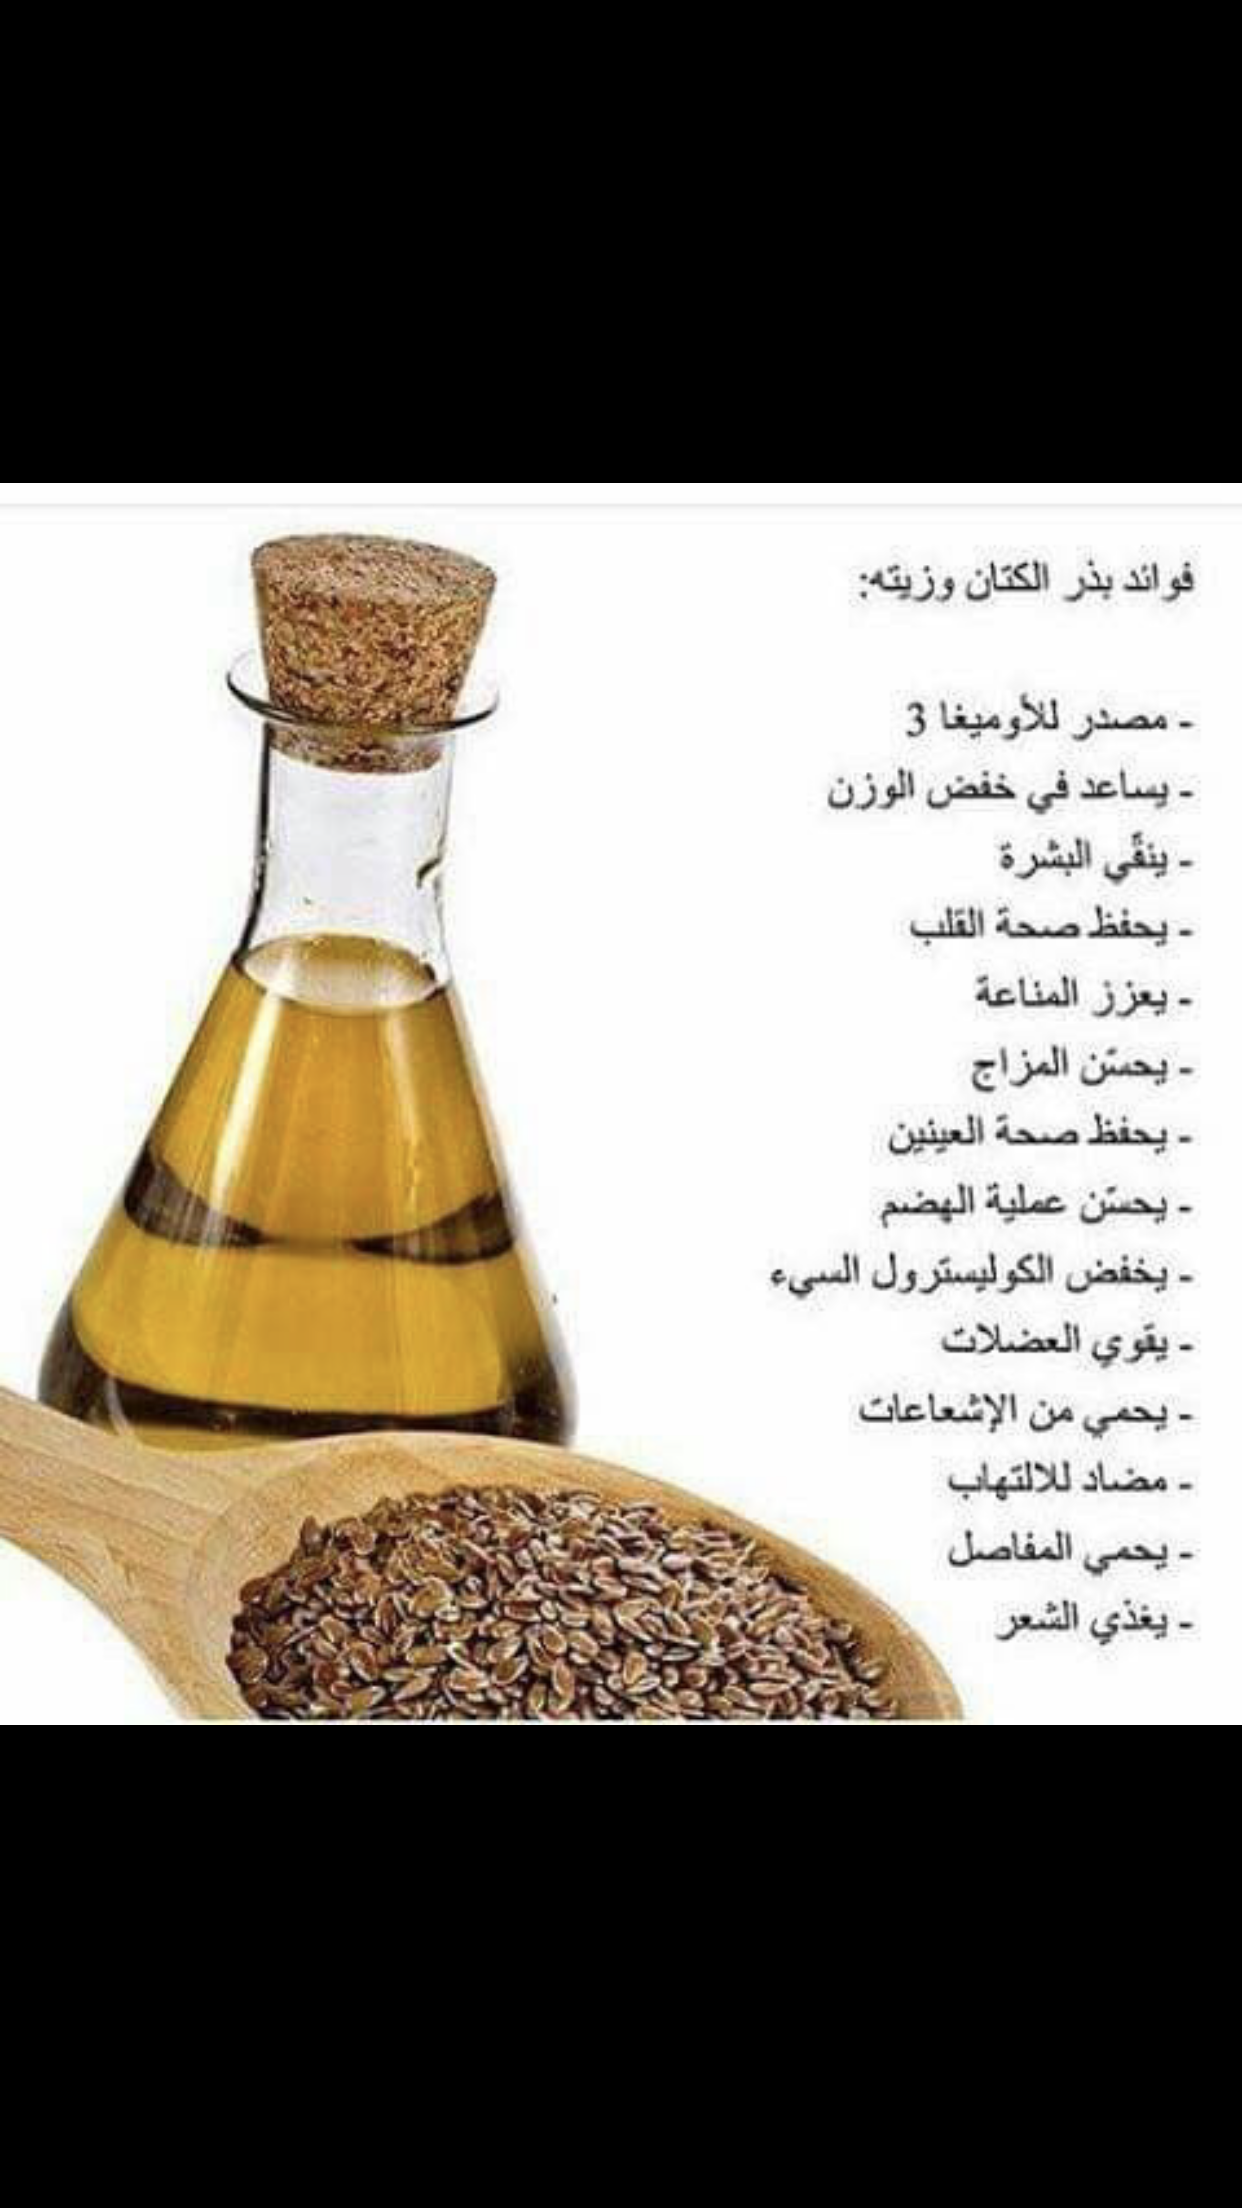 Pin By خليفه On رجيم Wine Bottle Health Smoothies